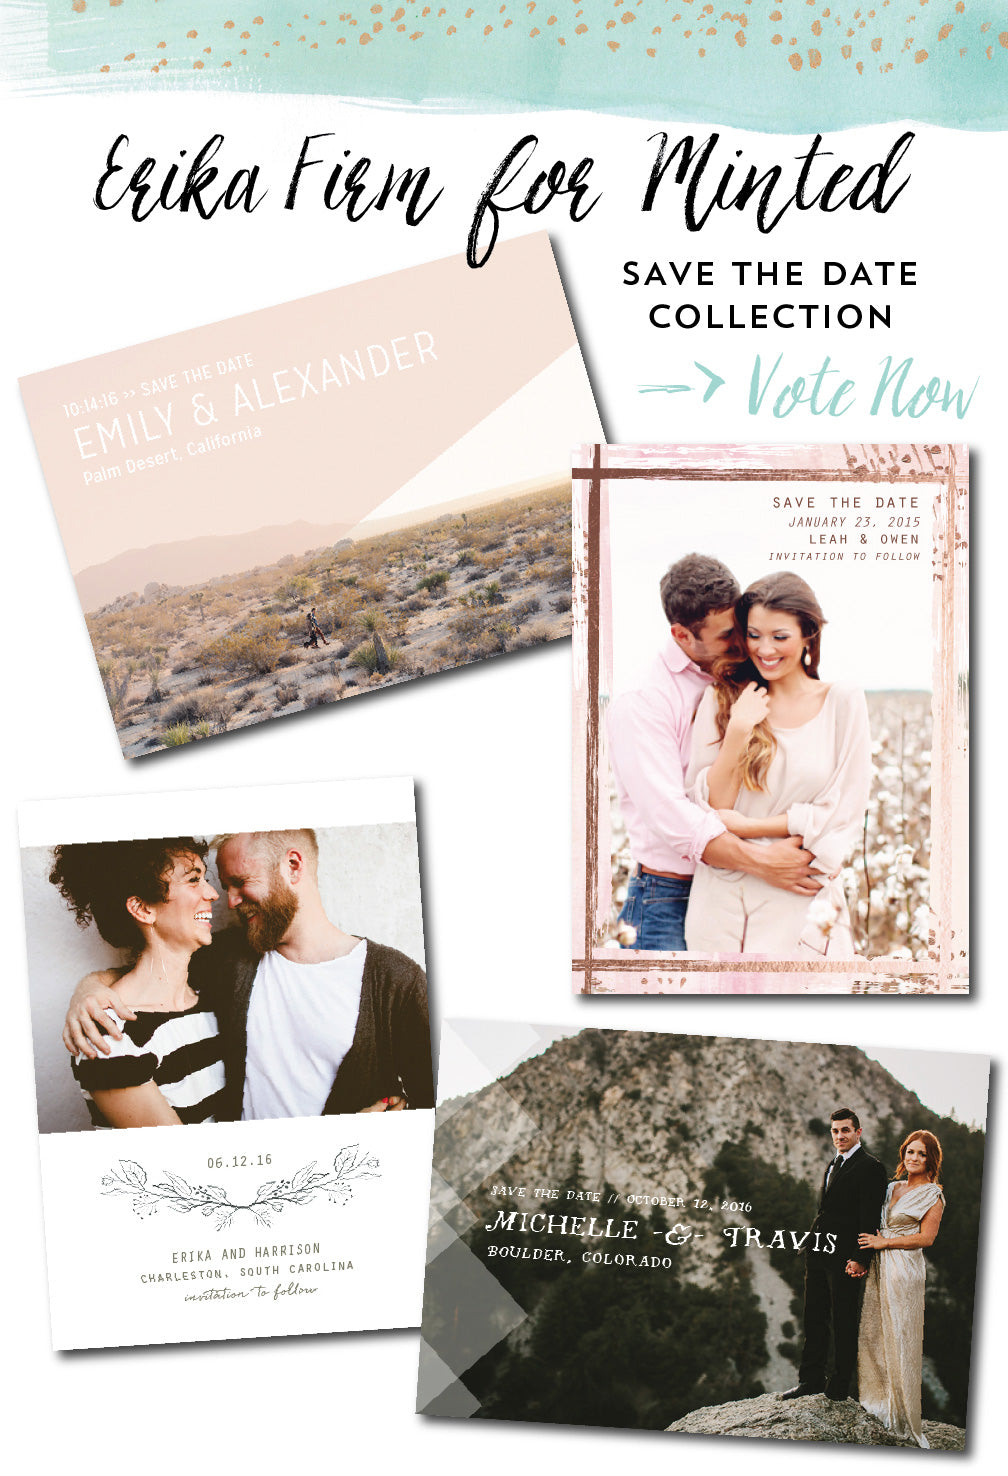 Erika Firm Save The Dates for Minted